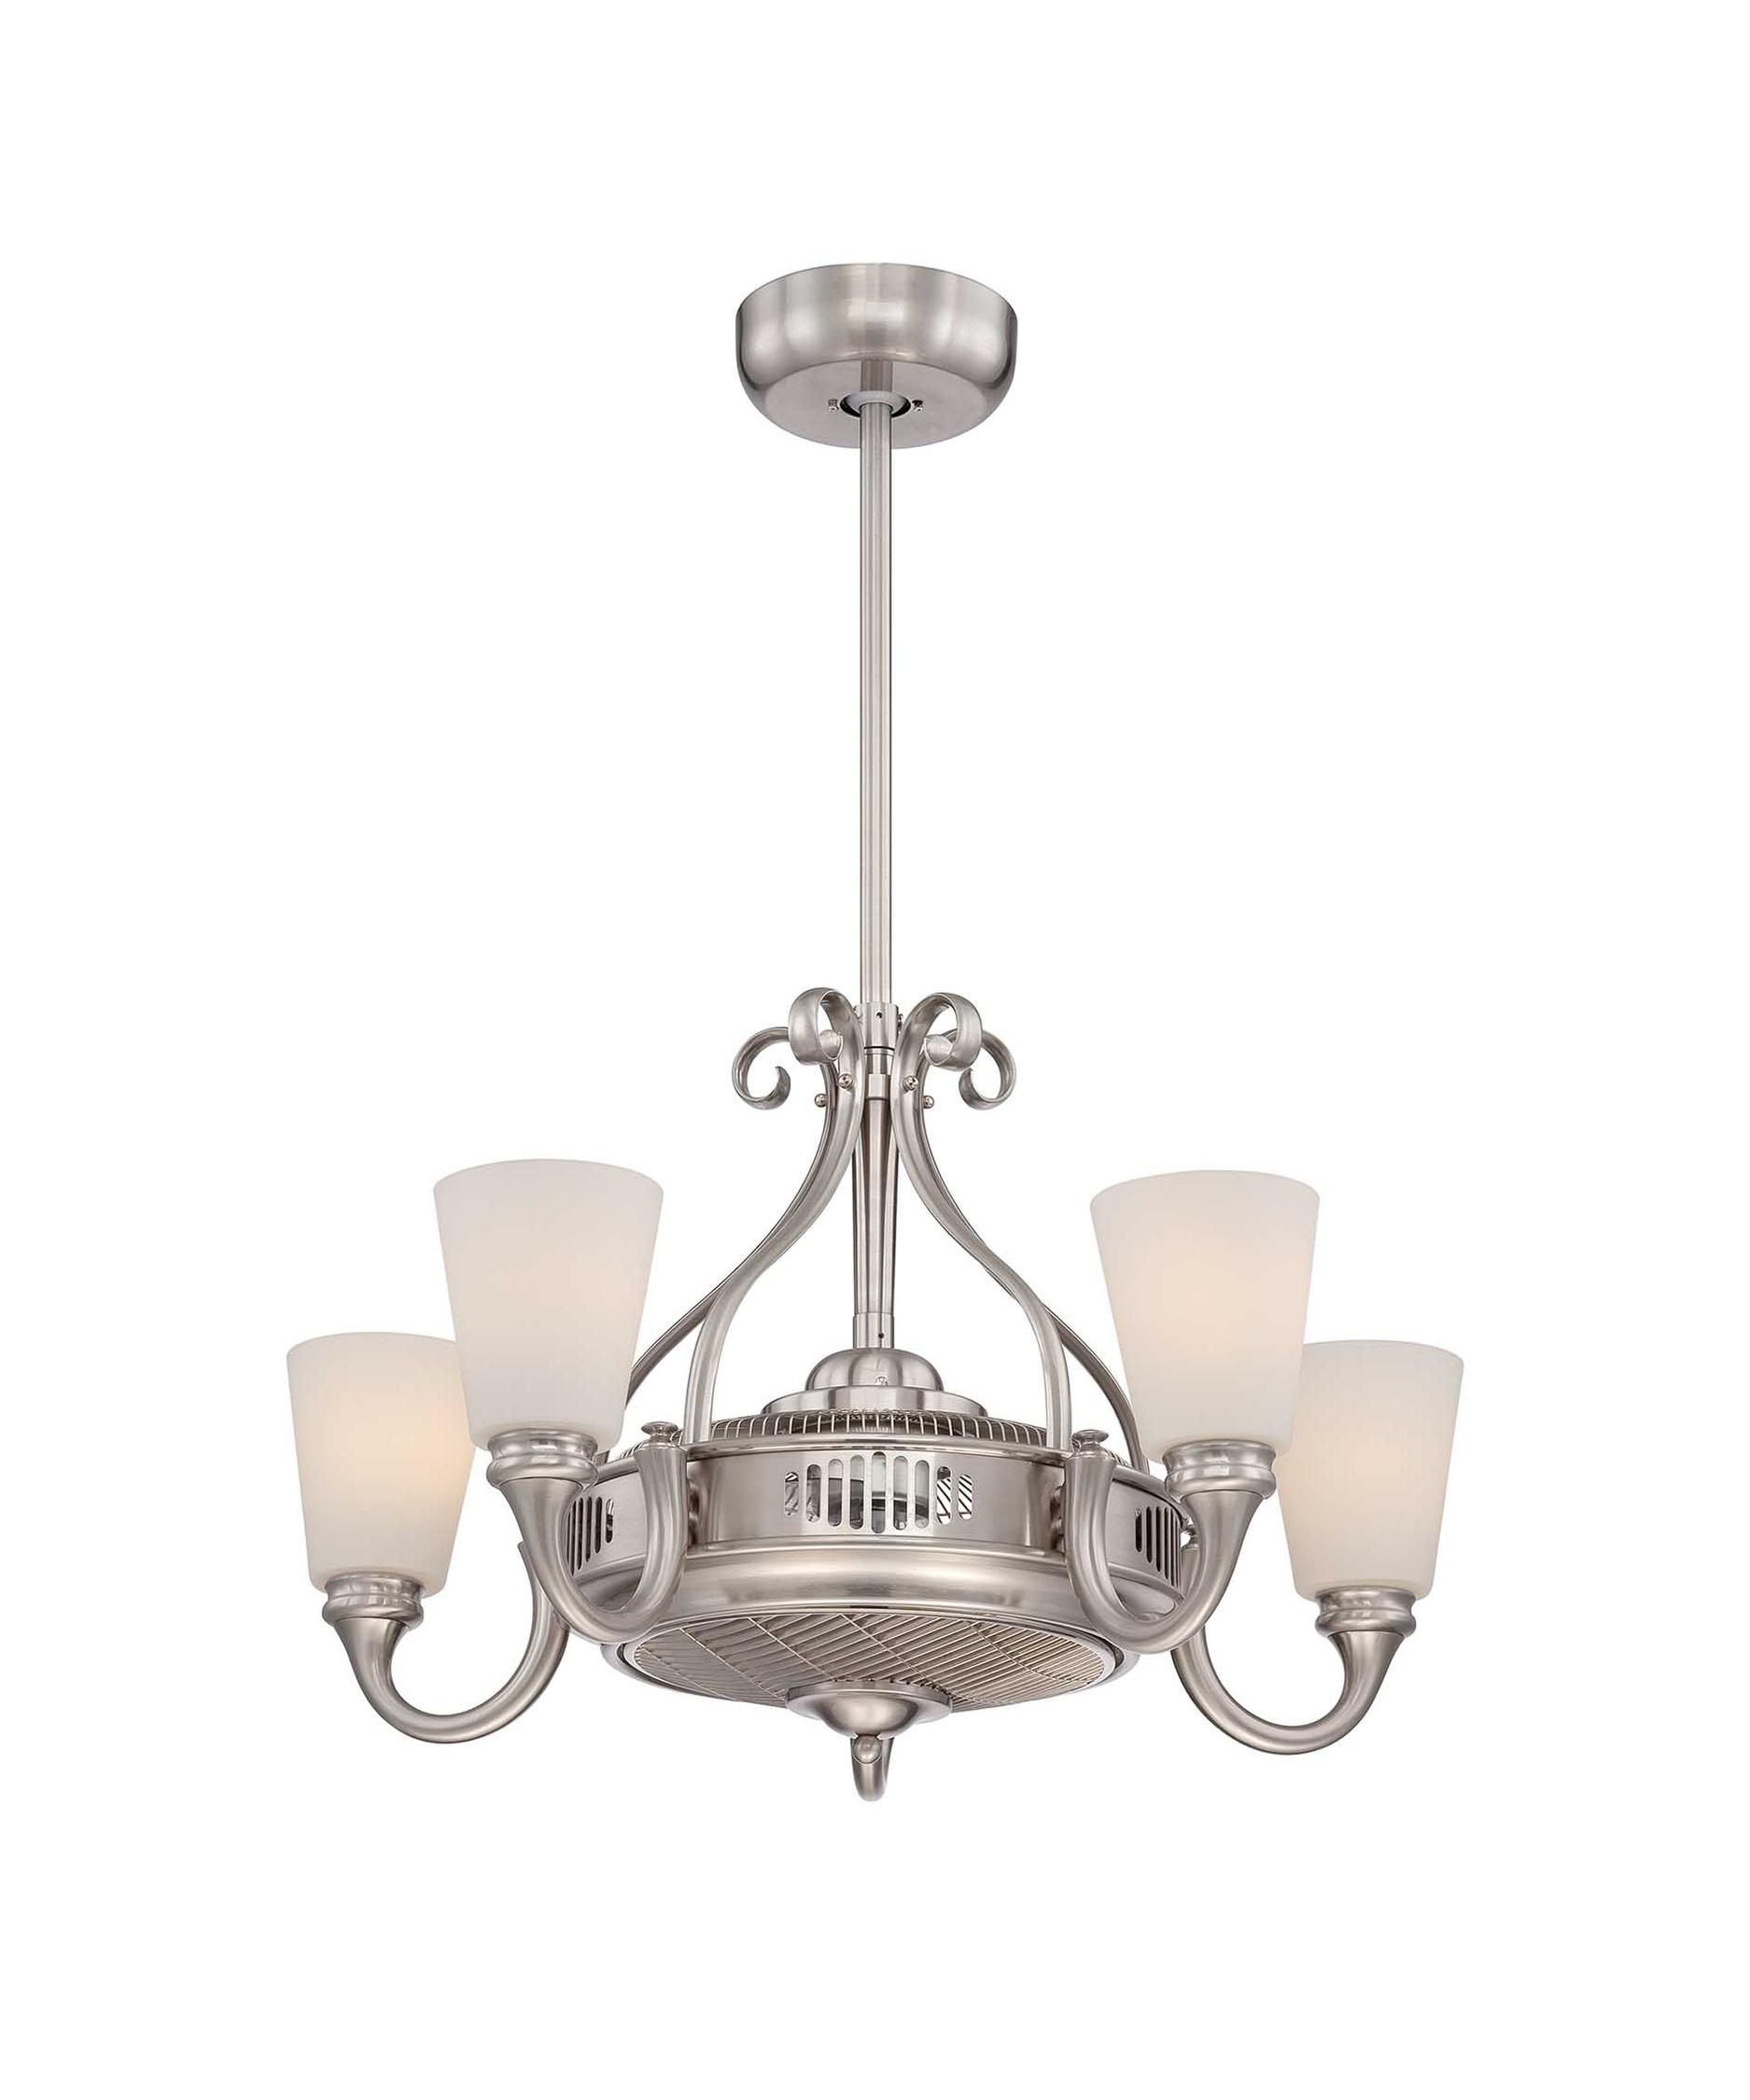 shown in satin nickel finish and white frosted glass - Savoy Lighting